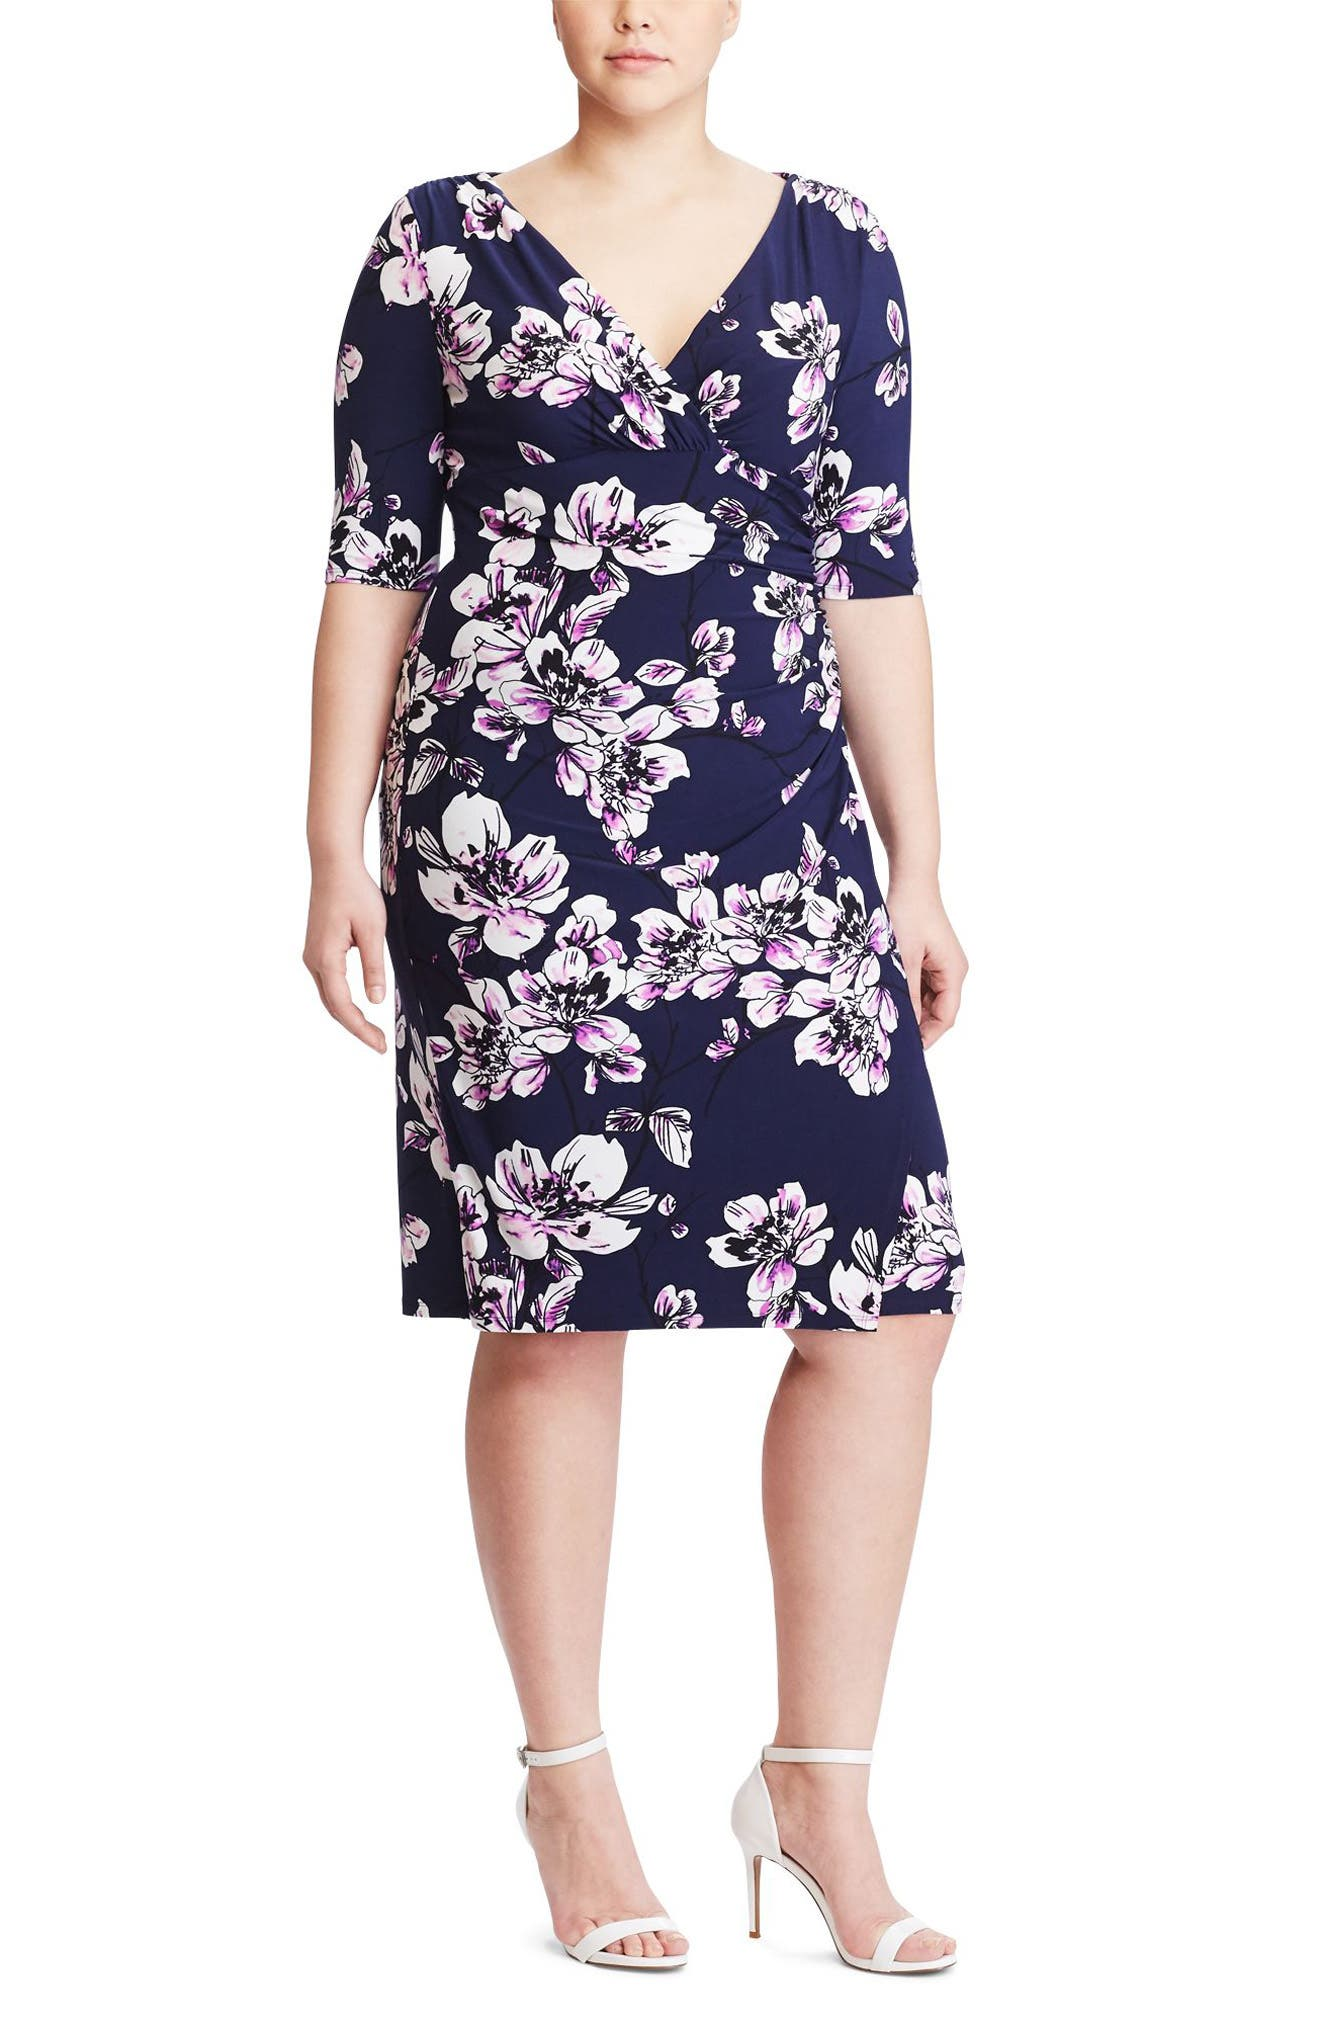 Lauren Ralph Lauren Floral Print Faux Wrap Dress (Plus Size)